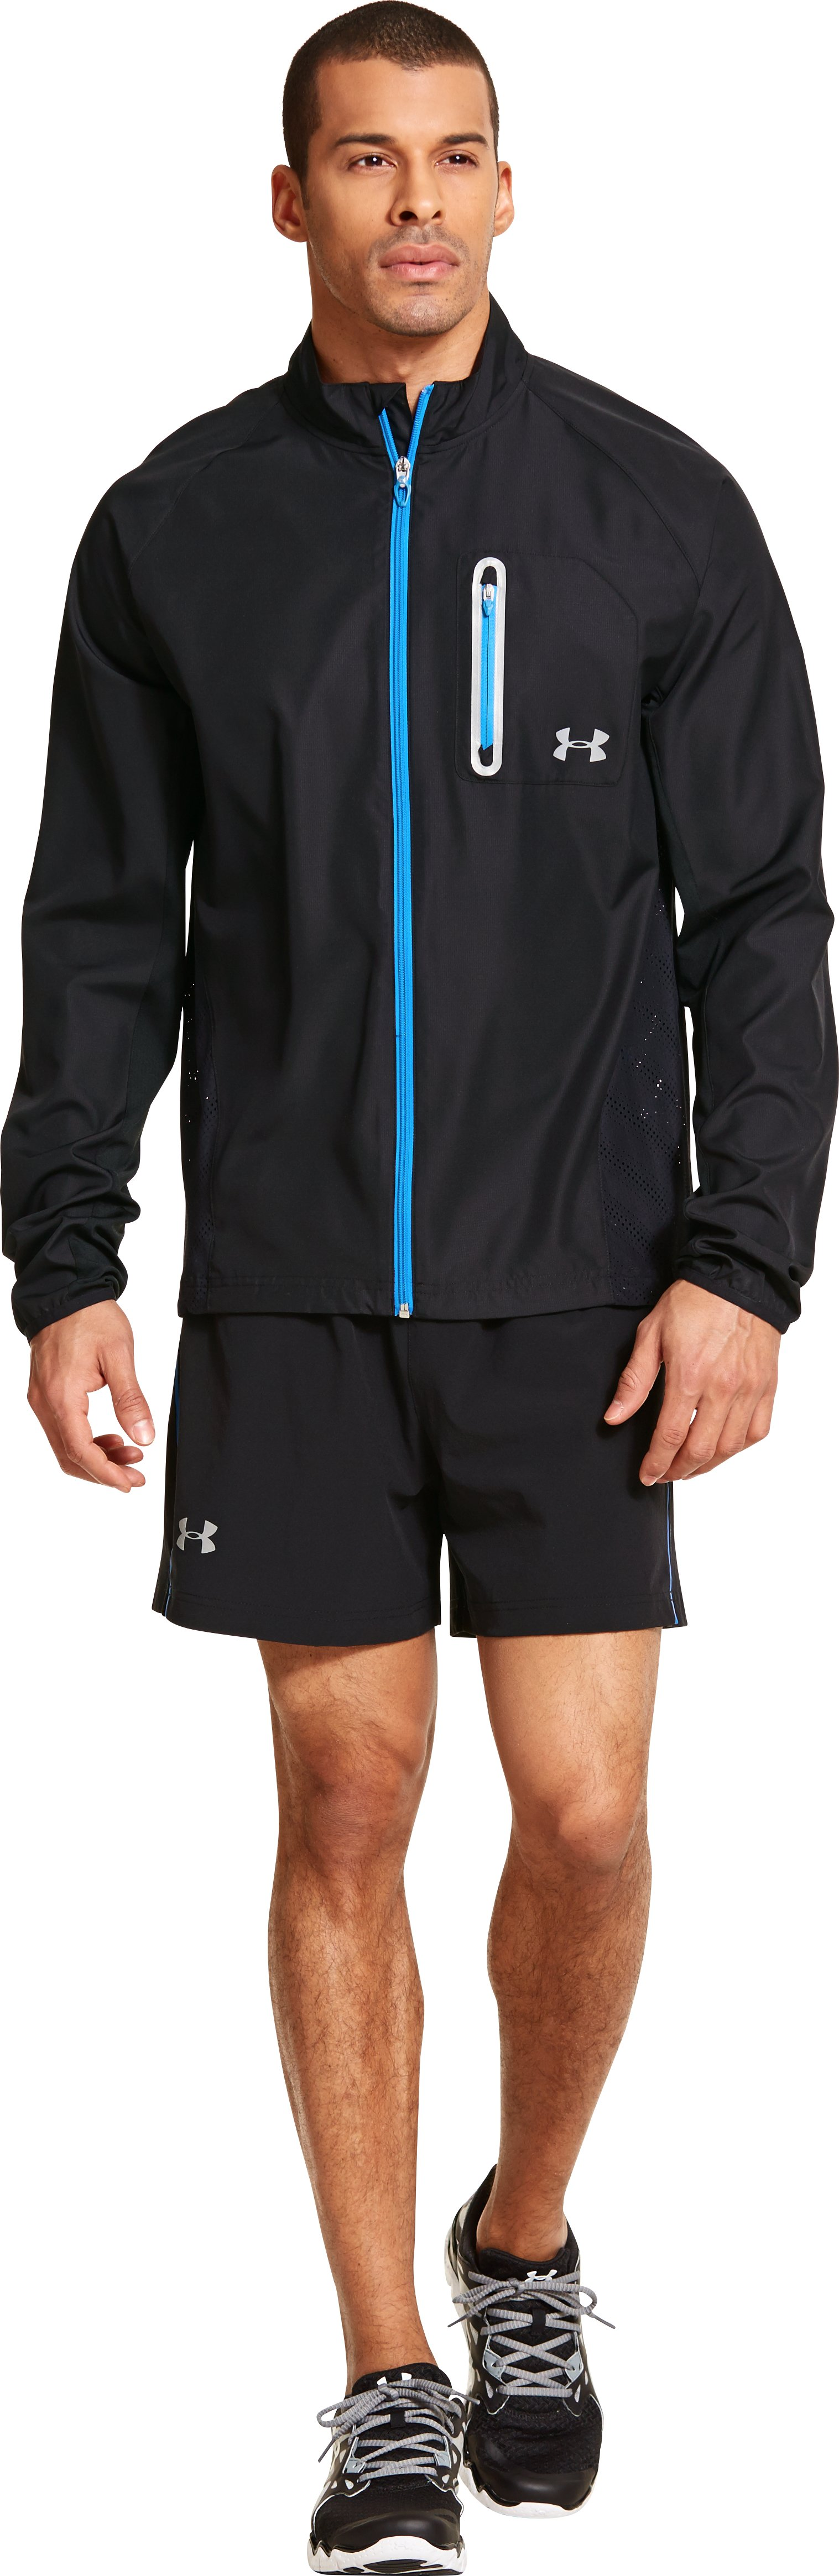 Men's ArmourVent™ Run Jacket, Black , zoomed image